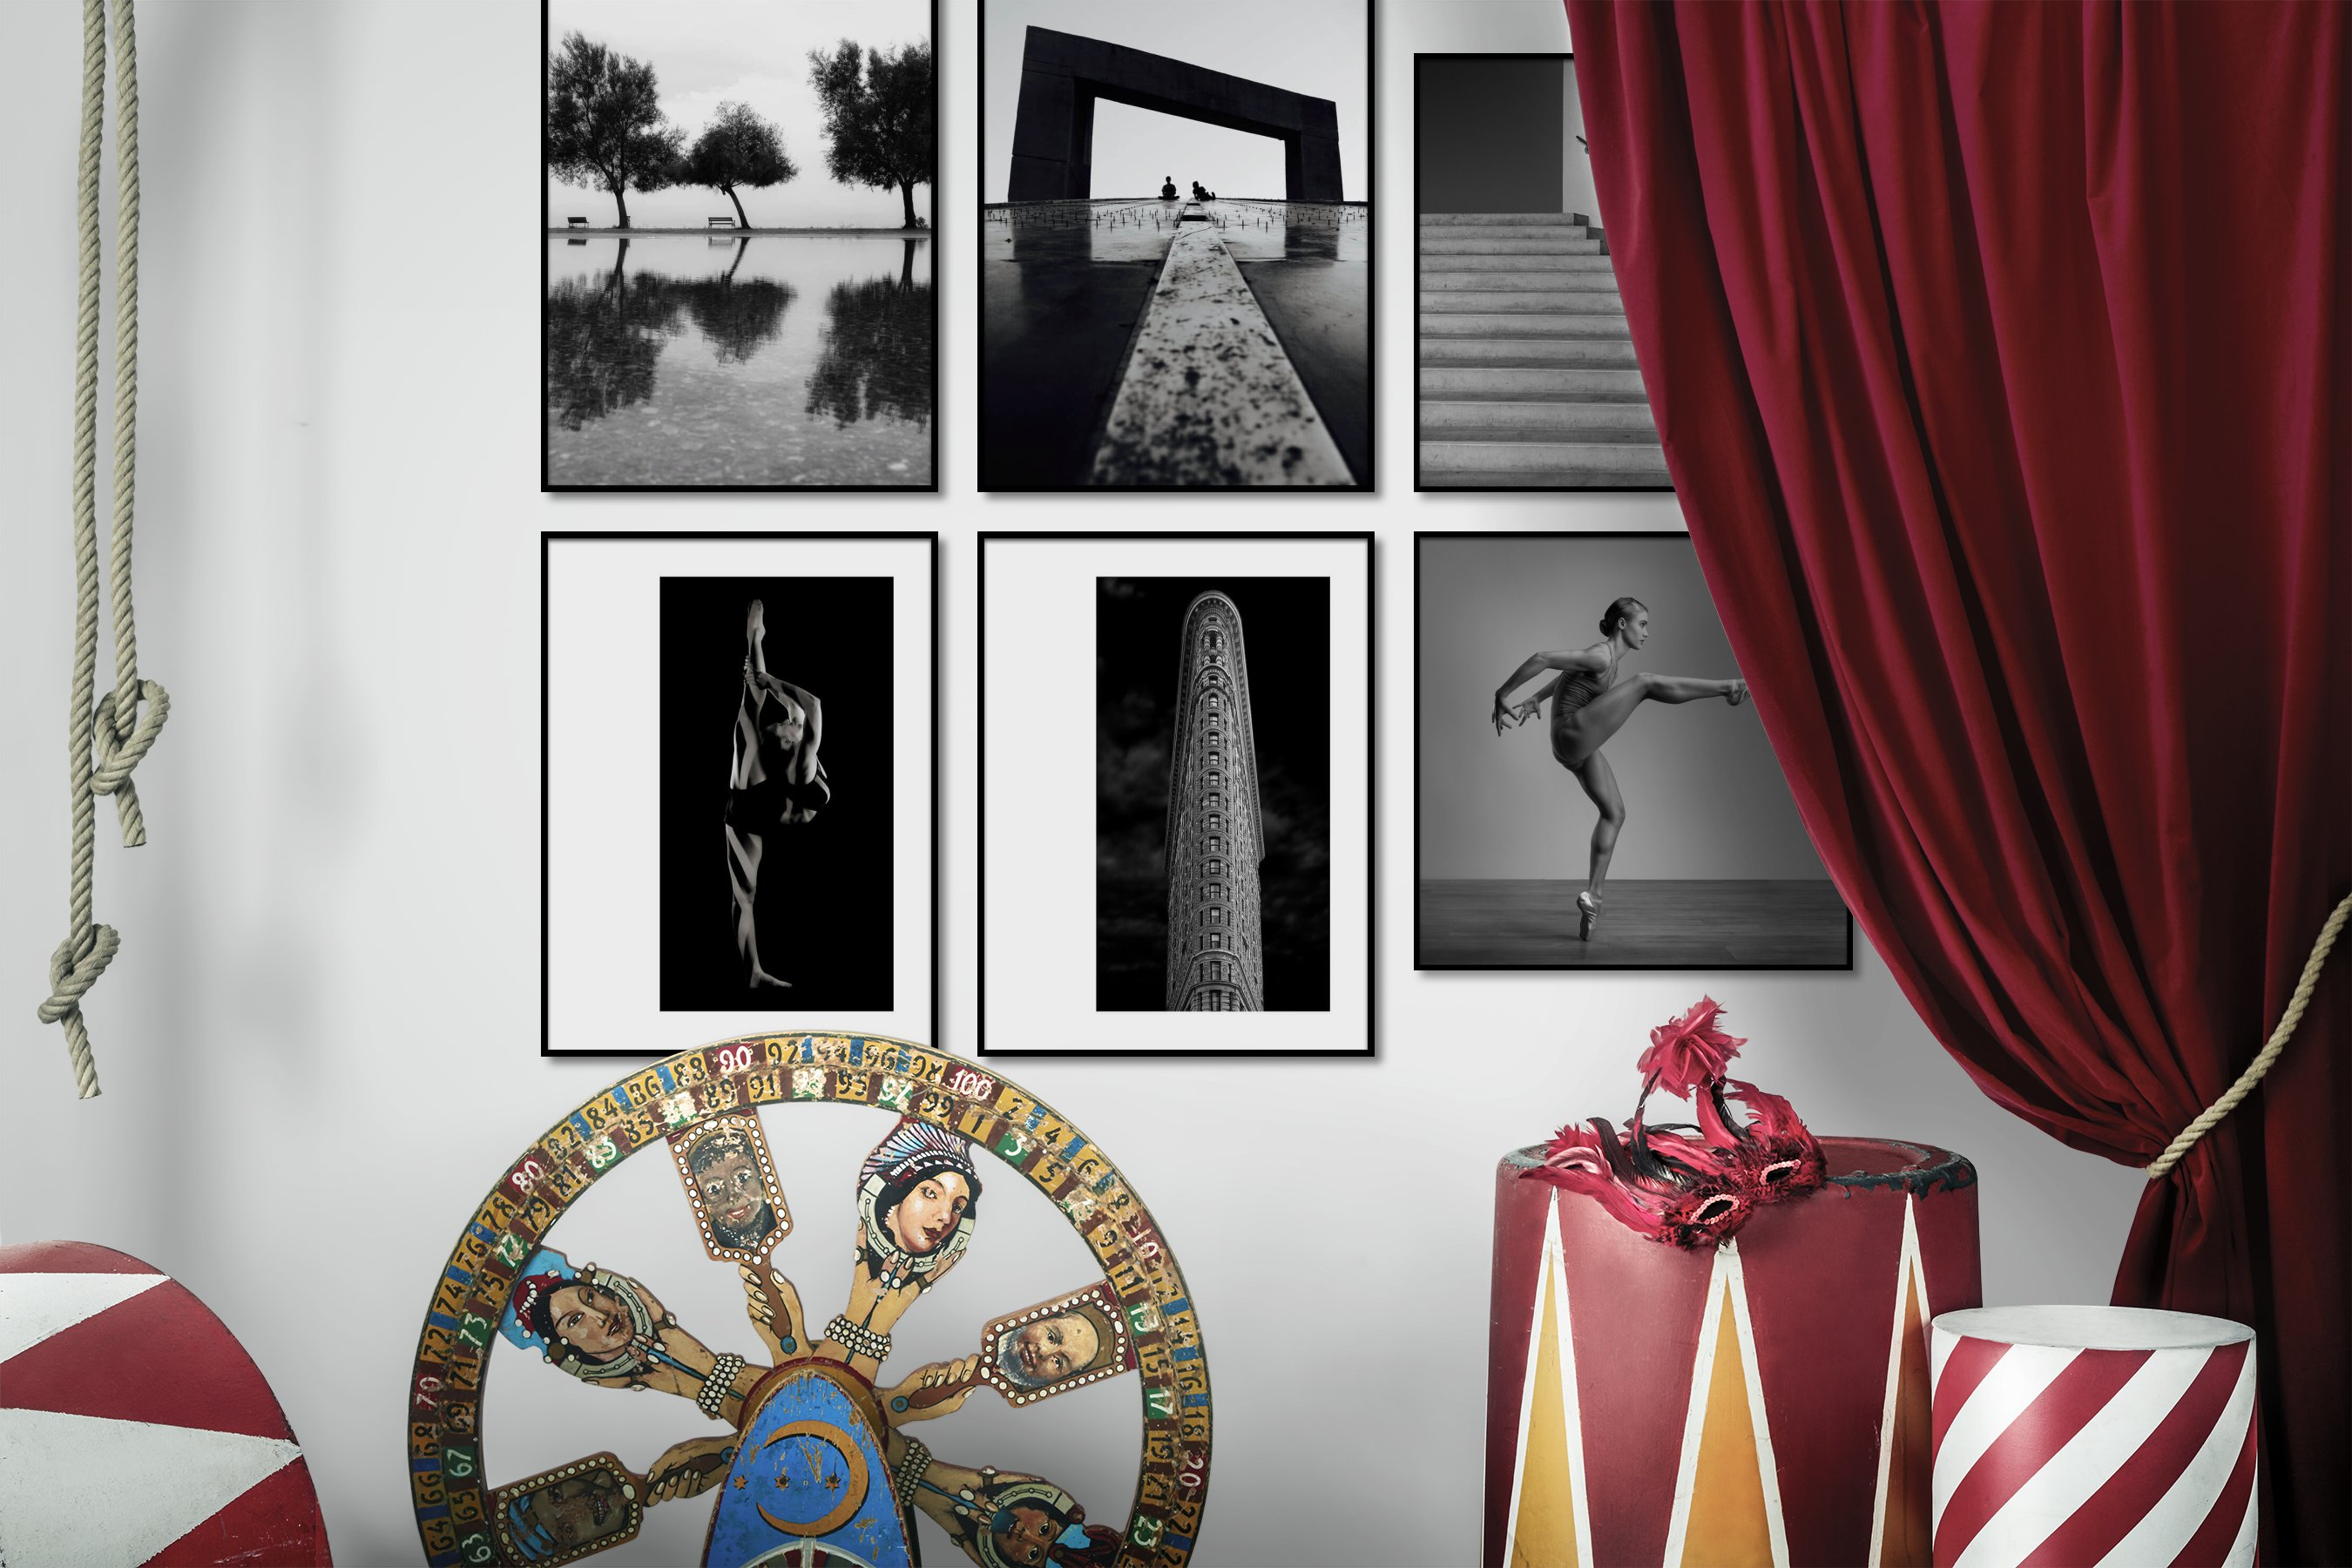 Gallery wall idea with six framed pictures arranged on a wall depicting Black & White, Mindfulness, For the Moderate, Fashion & Beauty, Dark Tones, For the Minimalist, City Life, and Americana